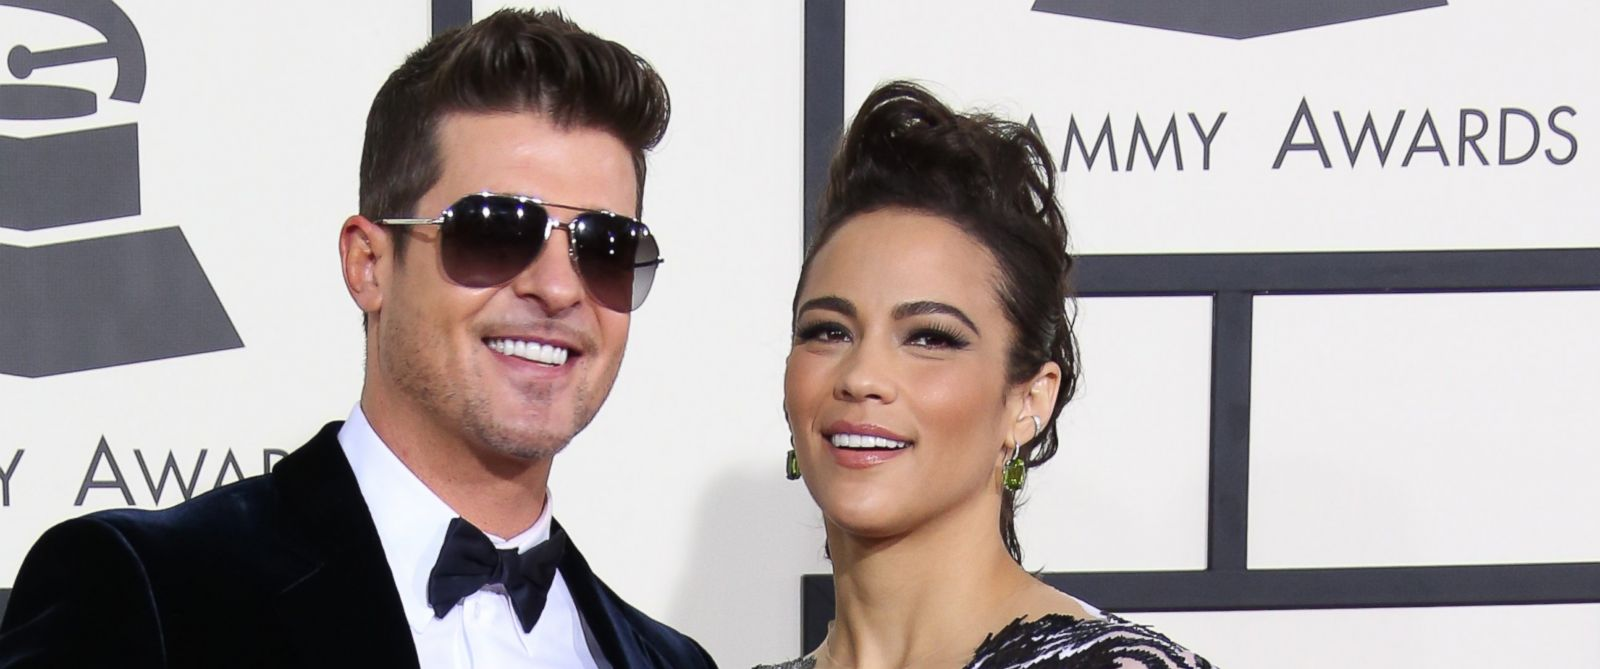 PHOTO: Robin Thicke and Paula Patton arrive at the 20th Annual Screen Actors Guild Awards at the Shrine Auditorium, Jan. 18, 2014 in Los Angeles.